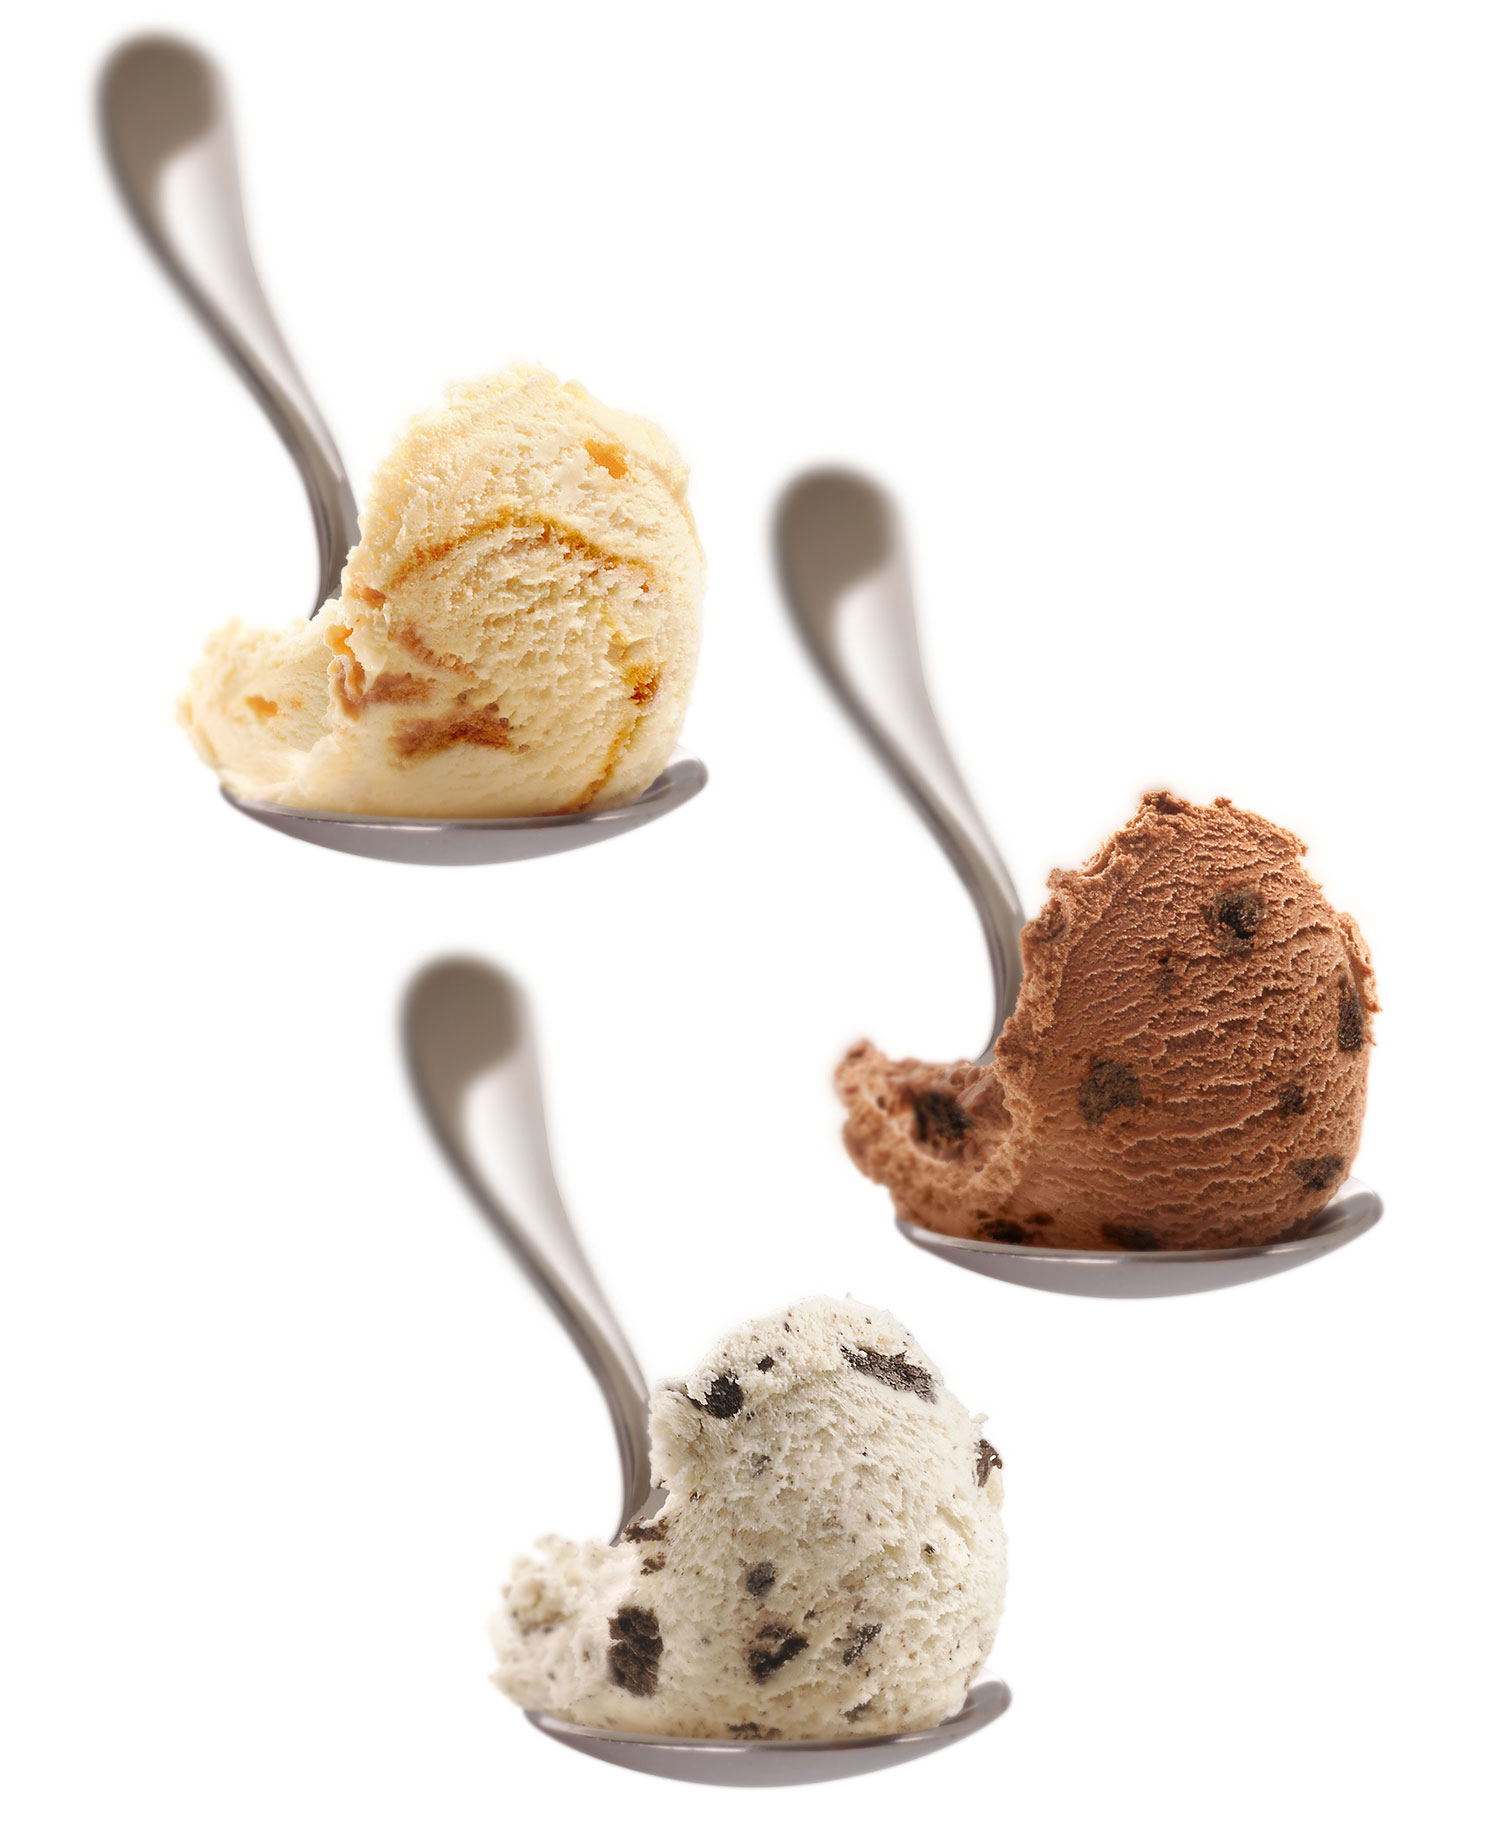 mike wepplo photoreal photography ice cream scoops on spoon